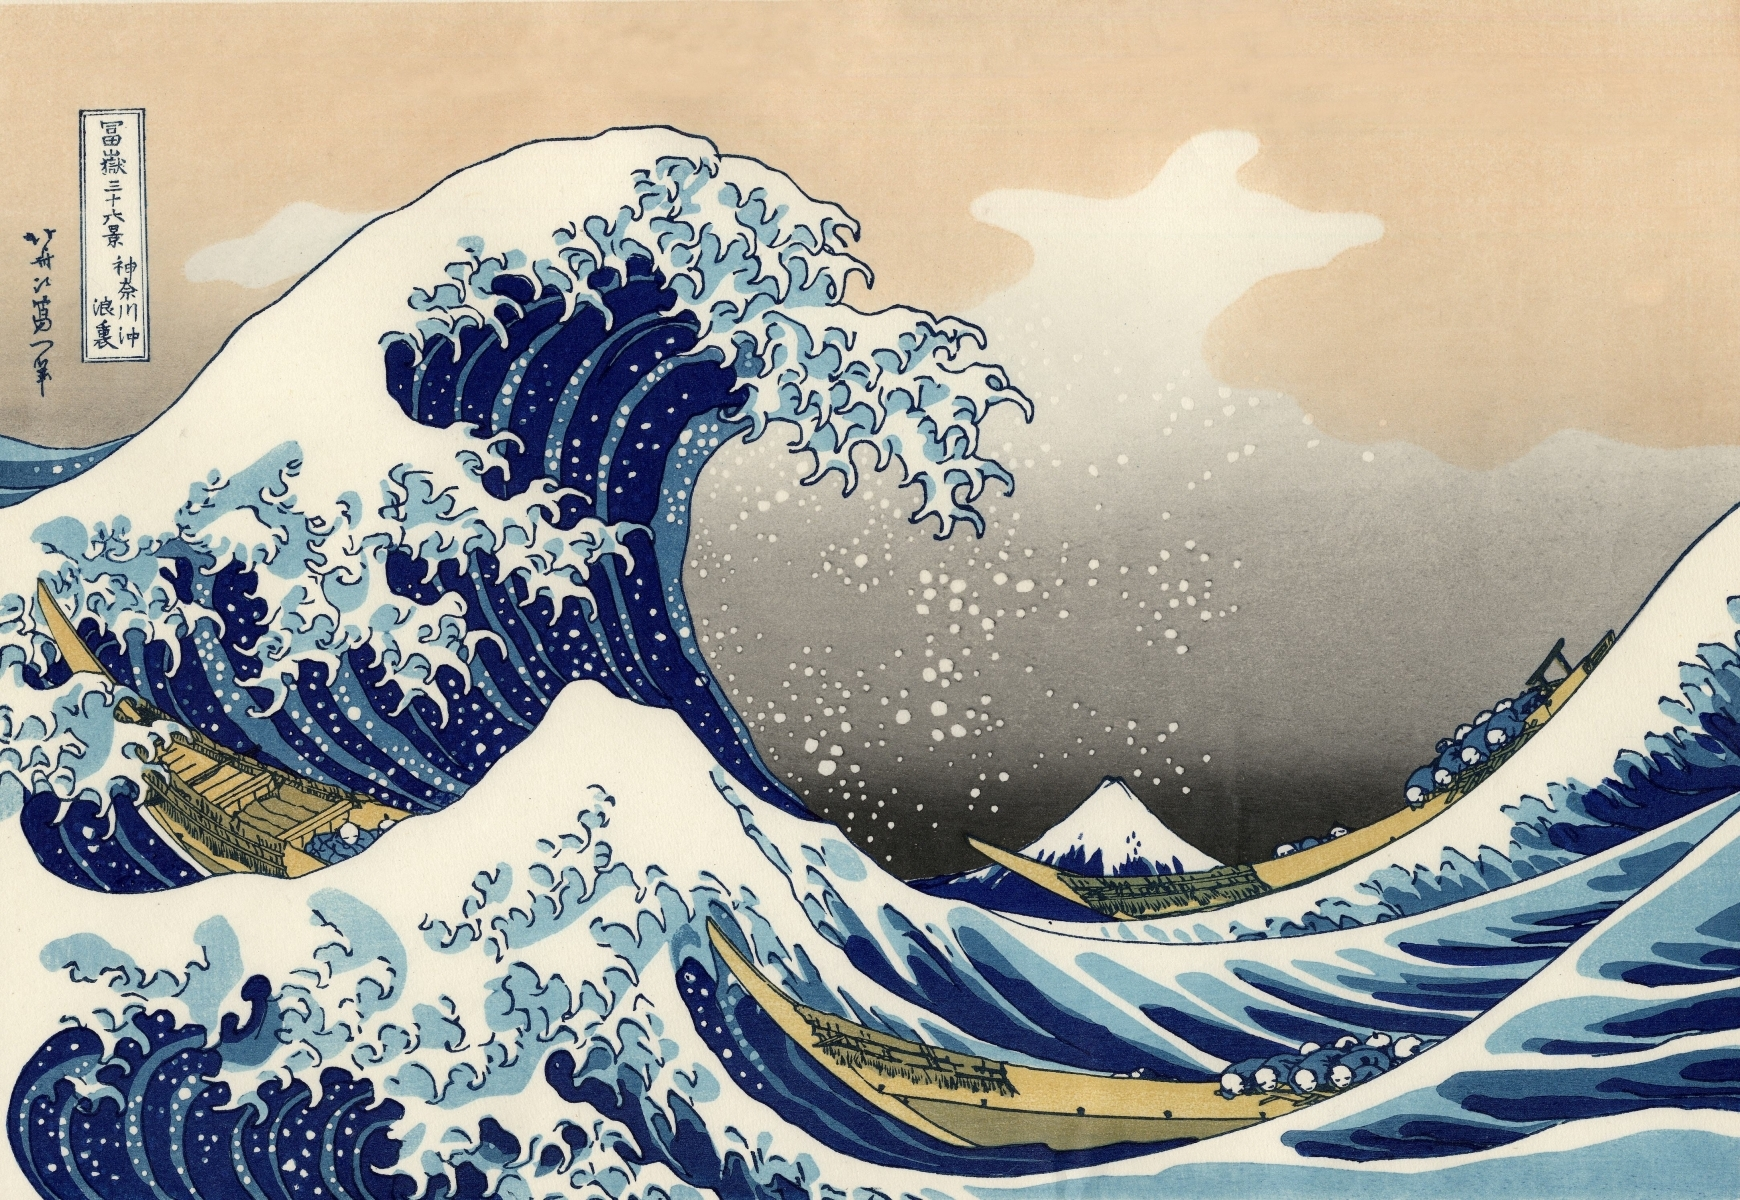 The great wave off HD Wallpaper